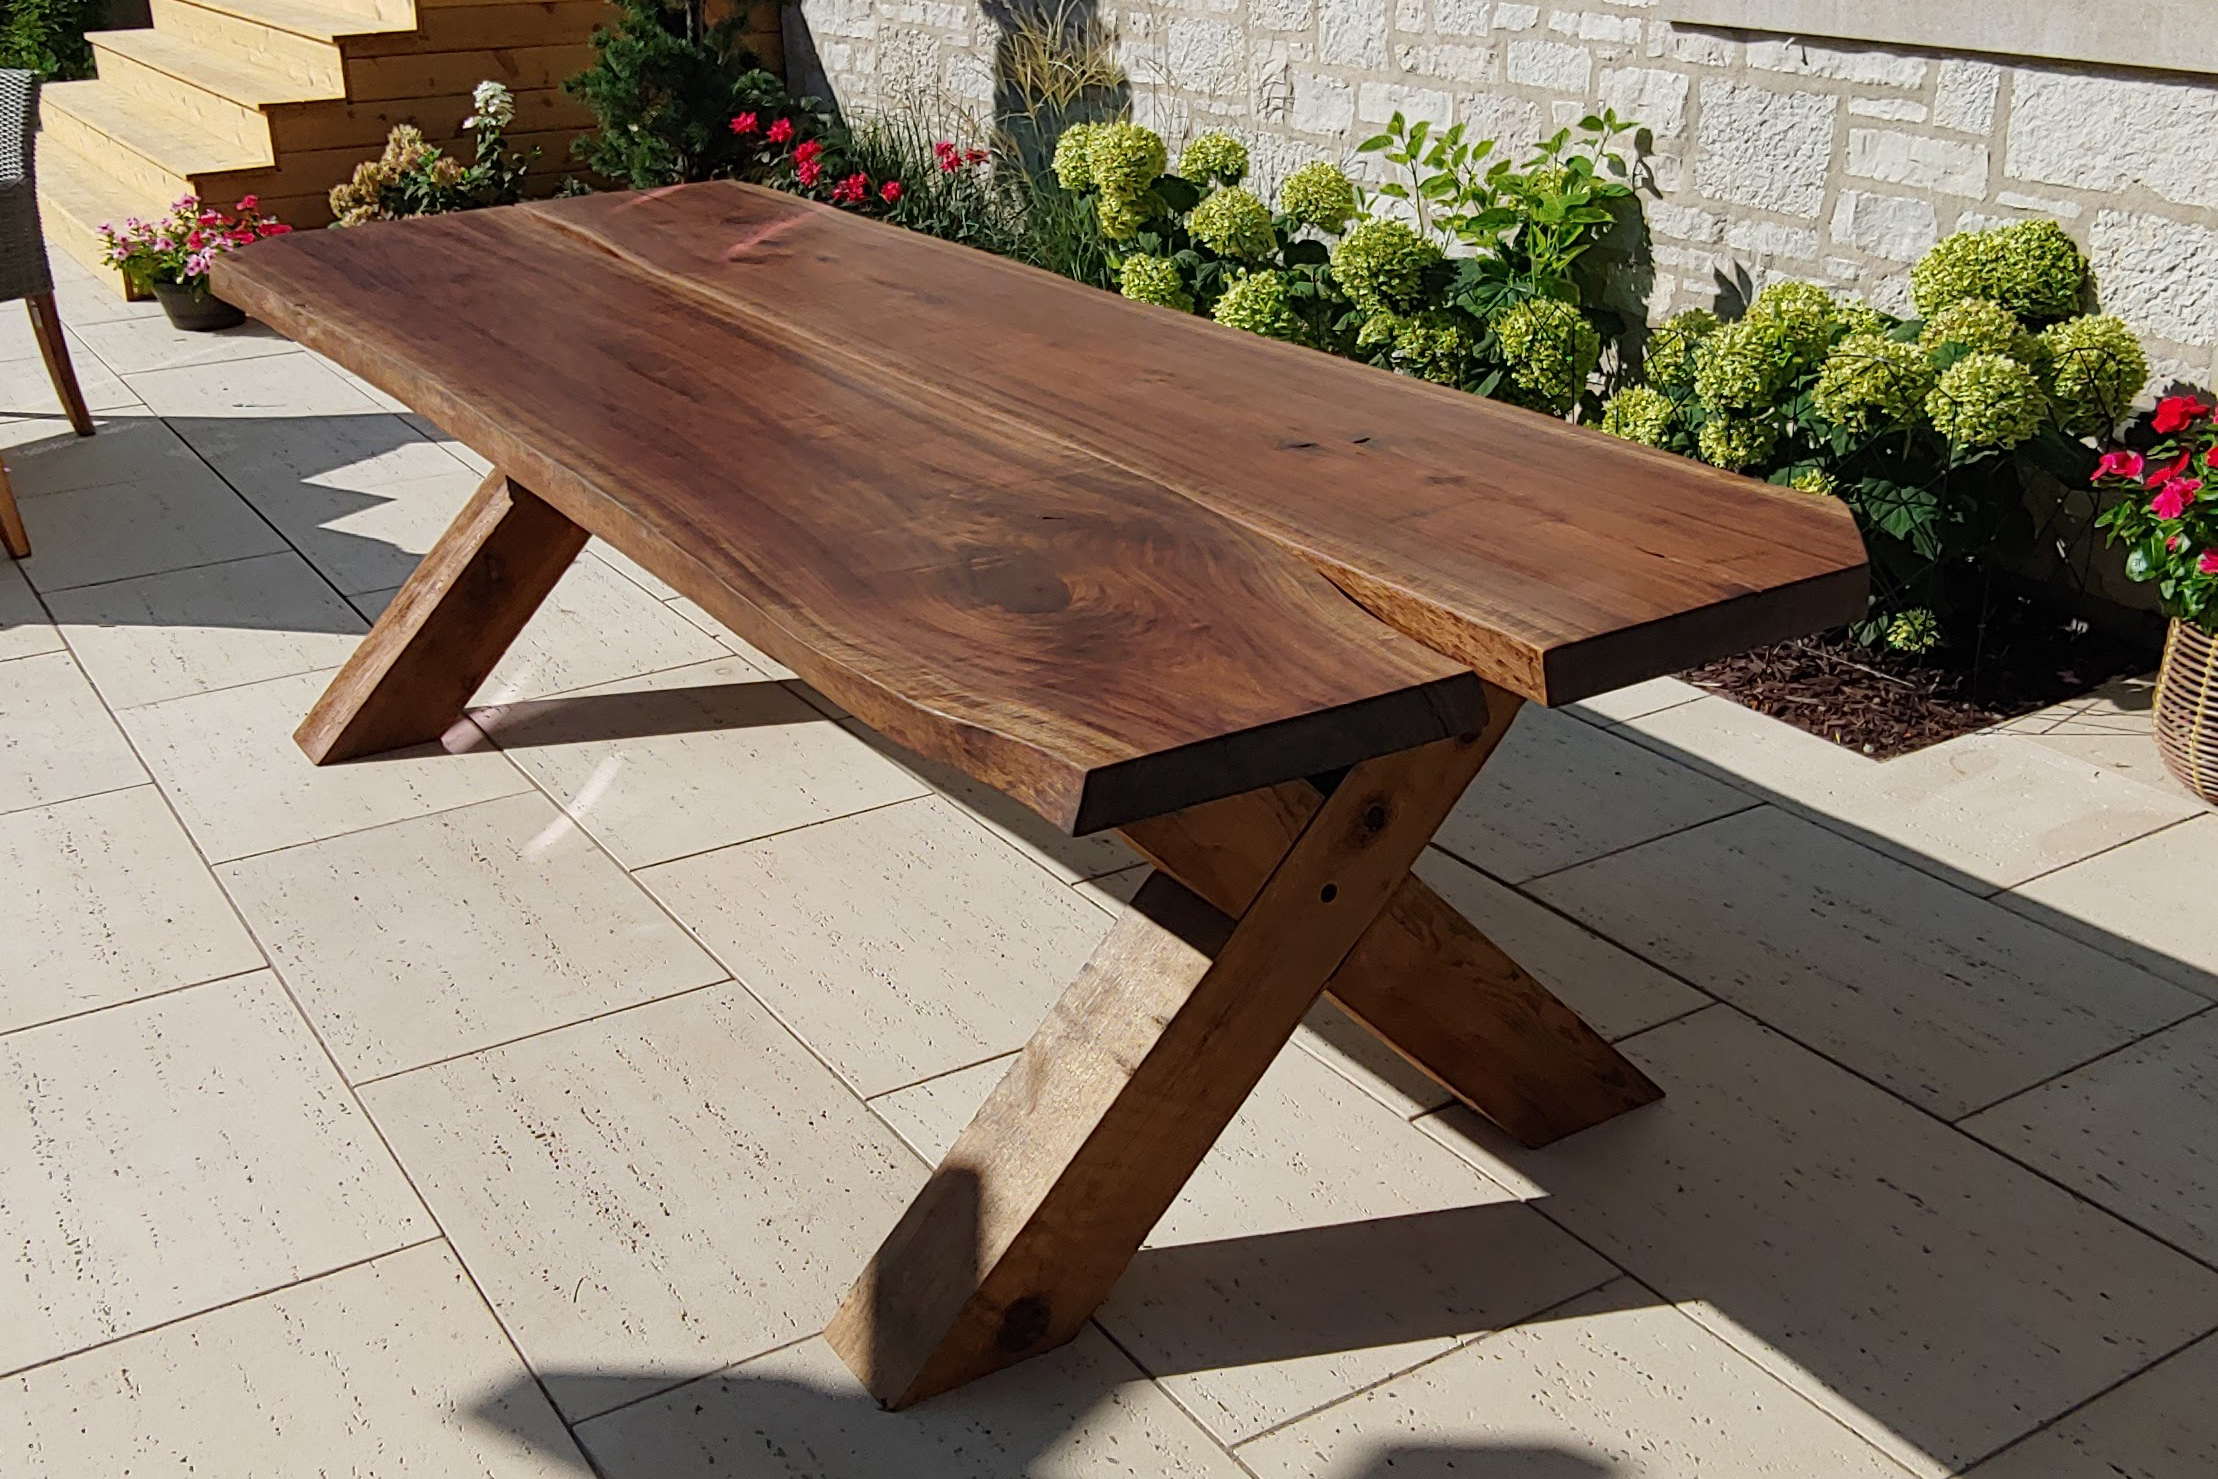 A table from Wood Urban Design